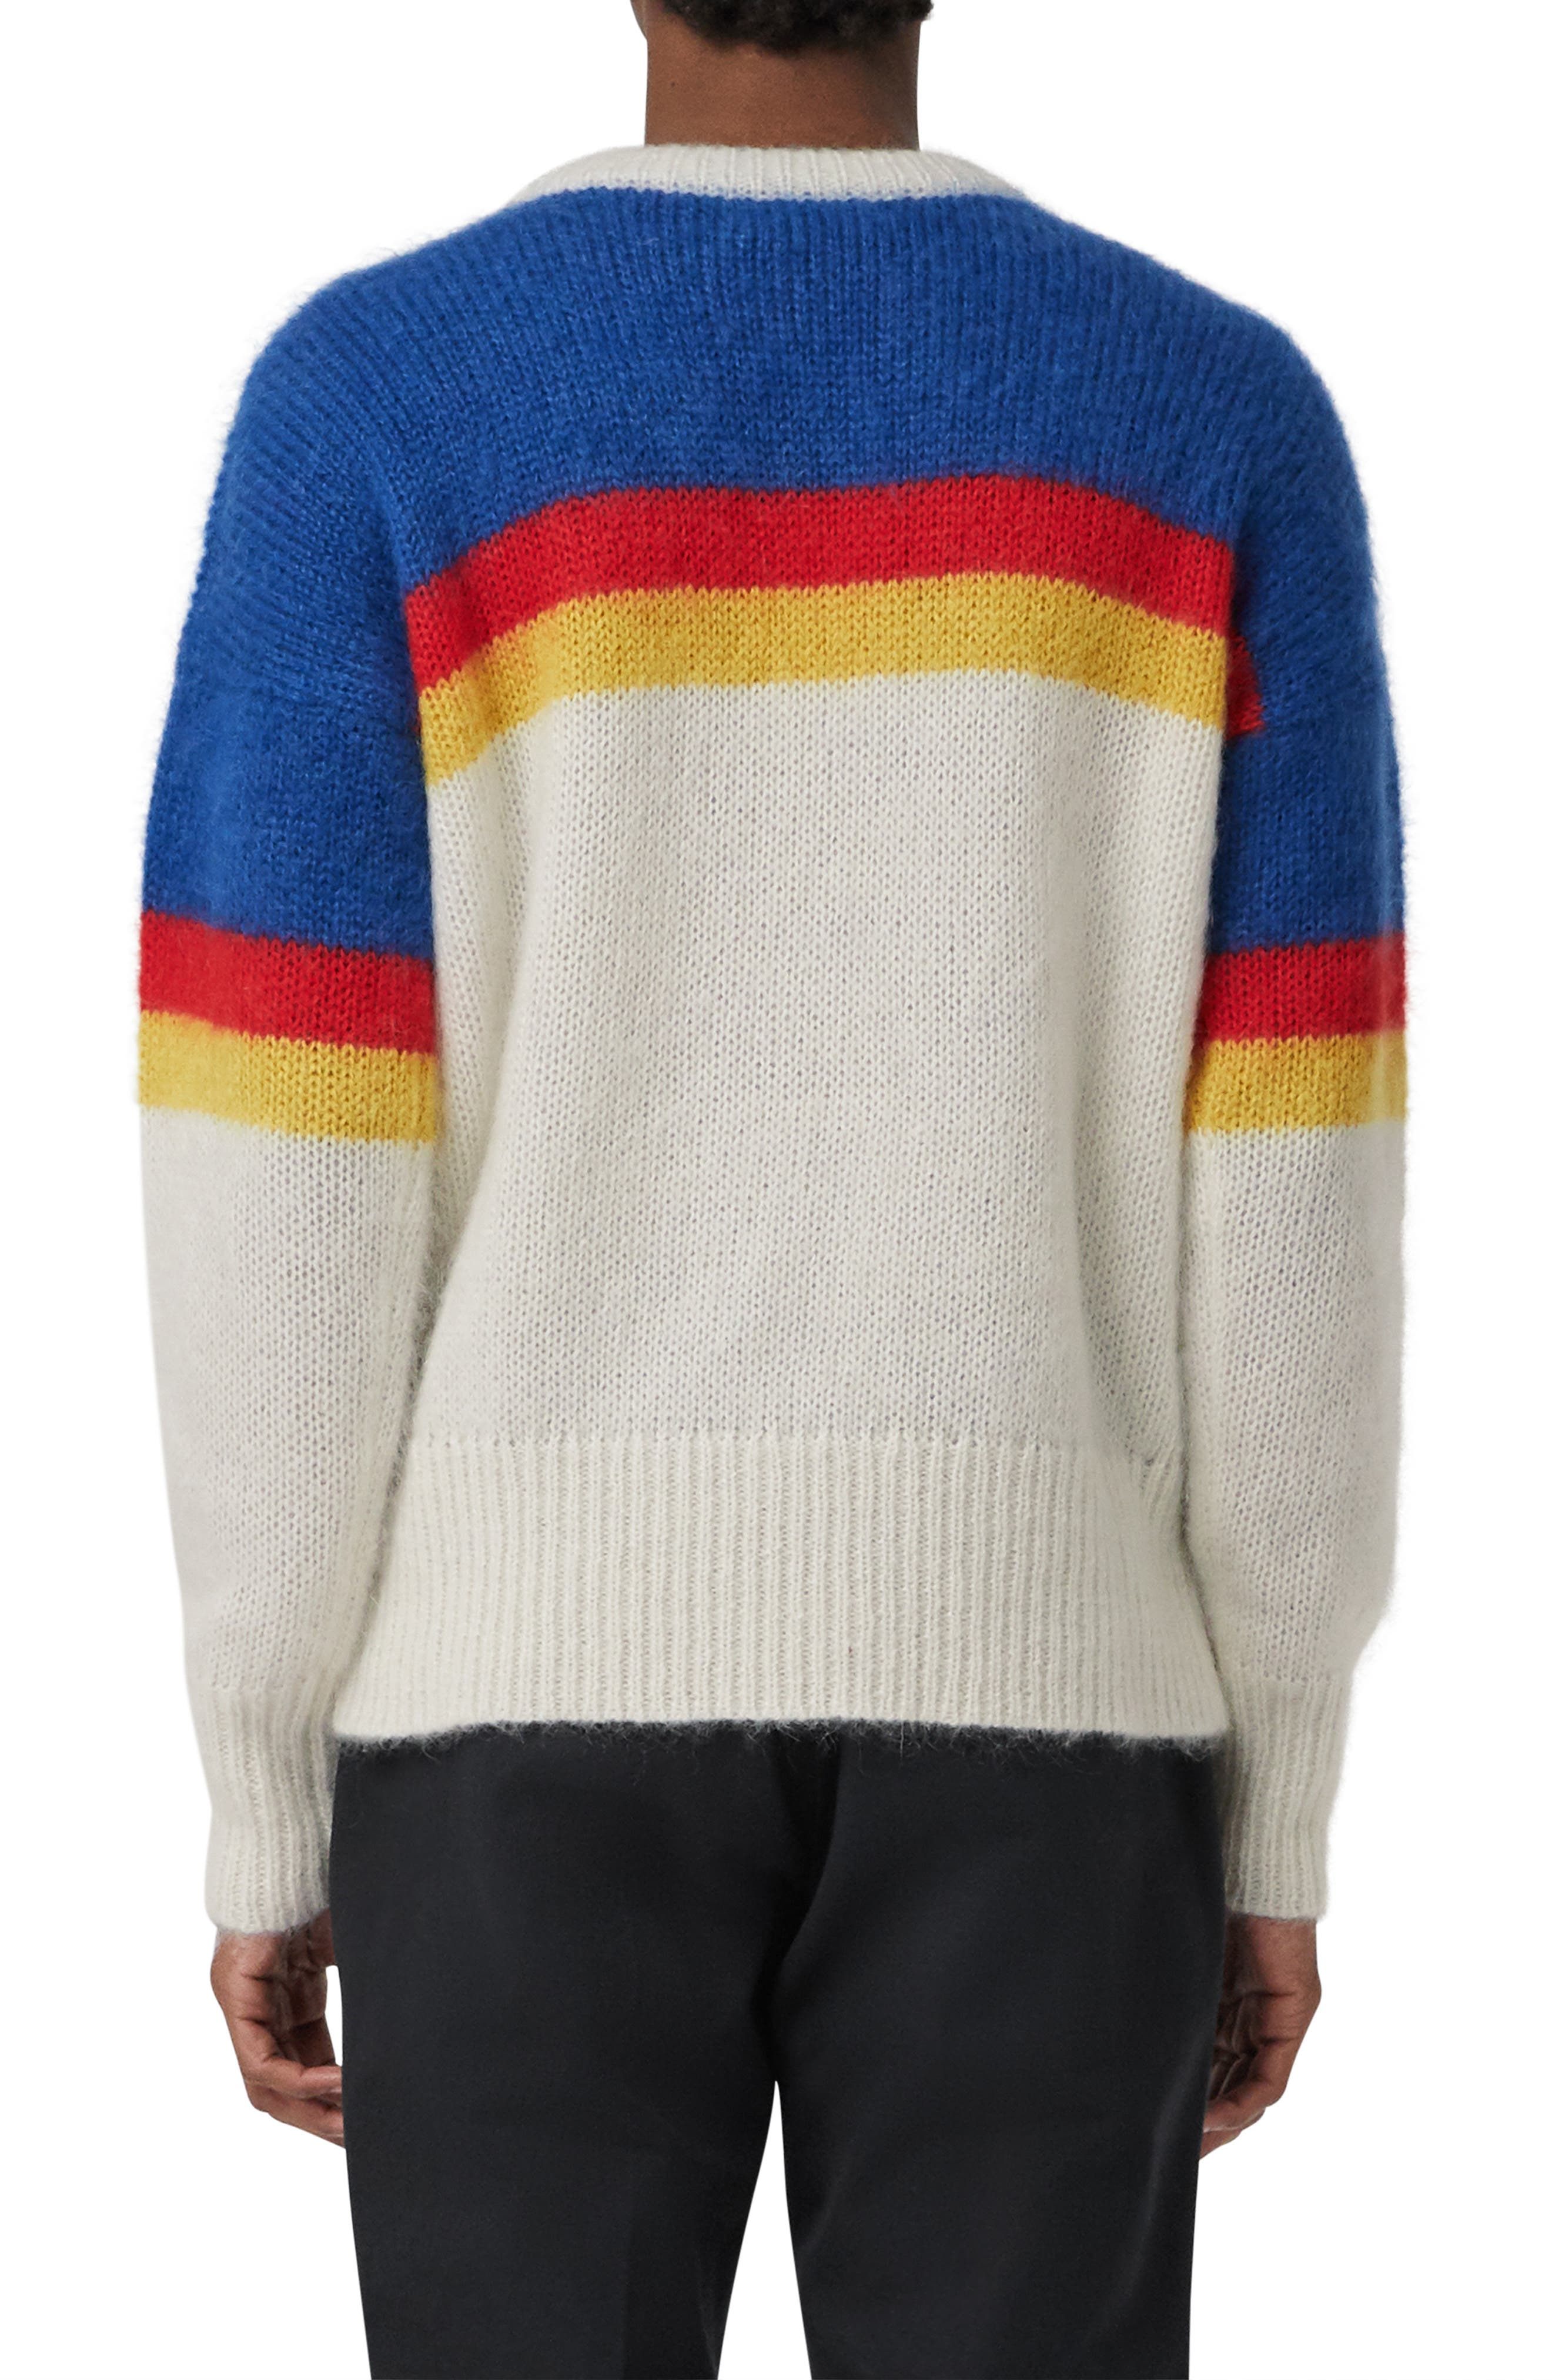 Osbourne Crewneck Sweater,                             Alternate thumbnail 2, color,                             400